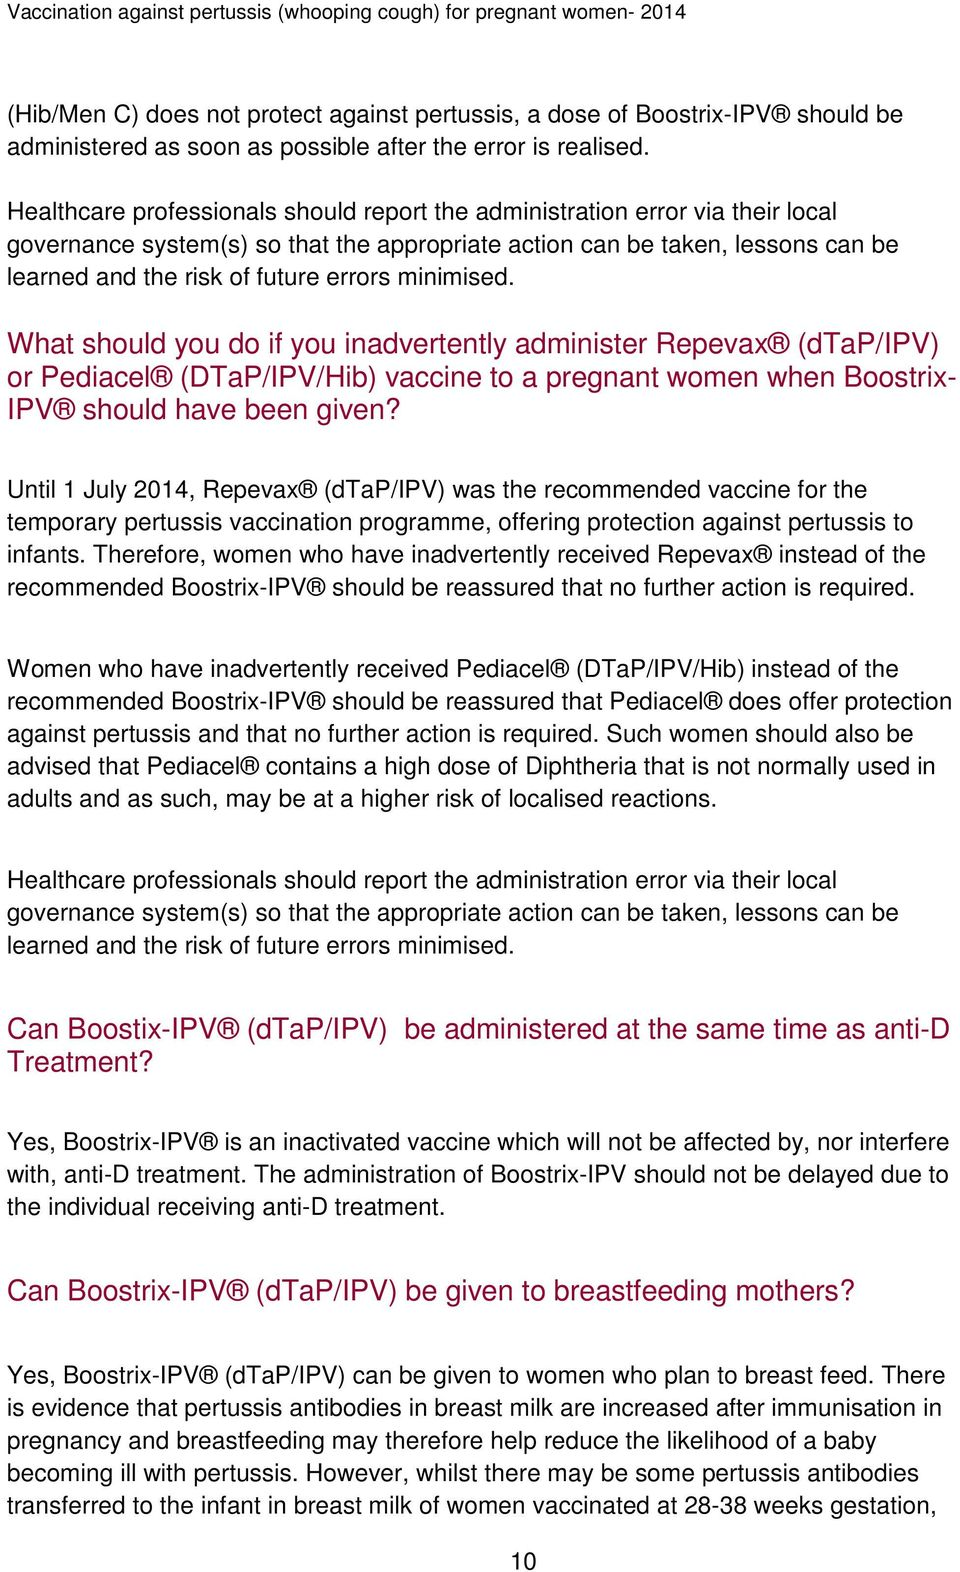 minimised. What should you do if you inadvertently administer Repevax (dtap/ipv) or Pediacel (DTaP/IPV/Hib) vaccine to a pregnant women when Boostrix- IPV should have been given?